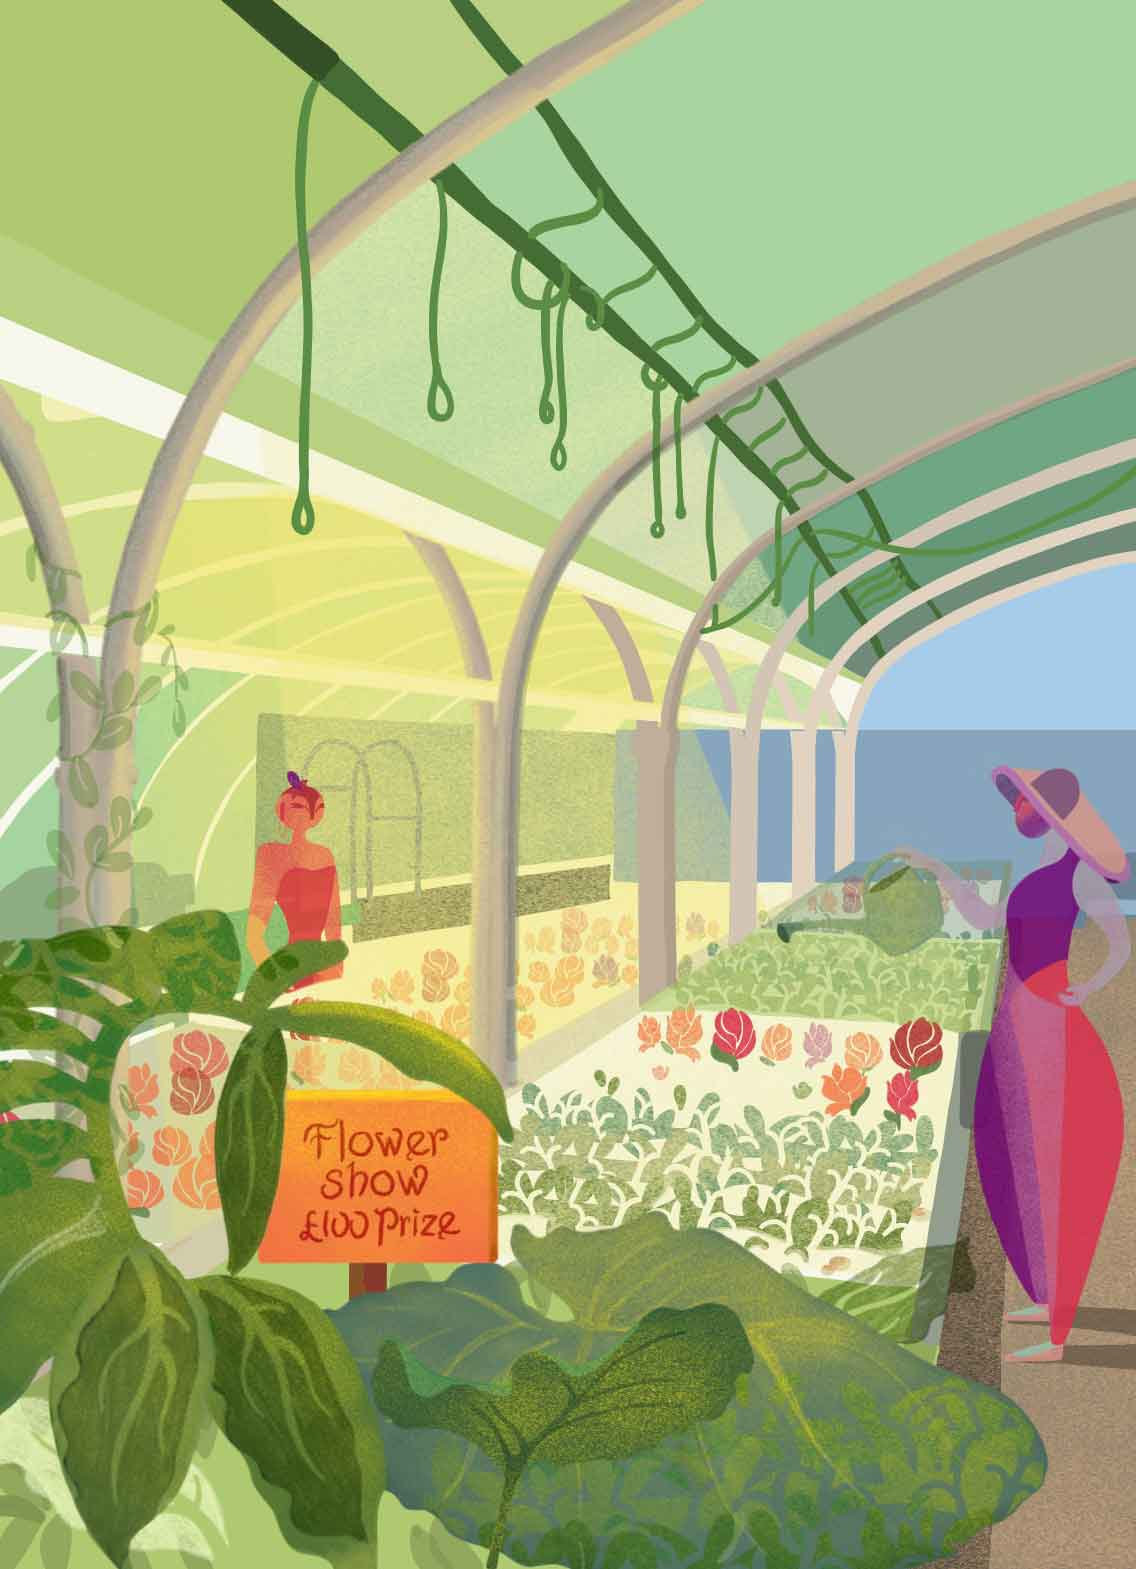 Illustration of woman holding watering can in greenhouse